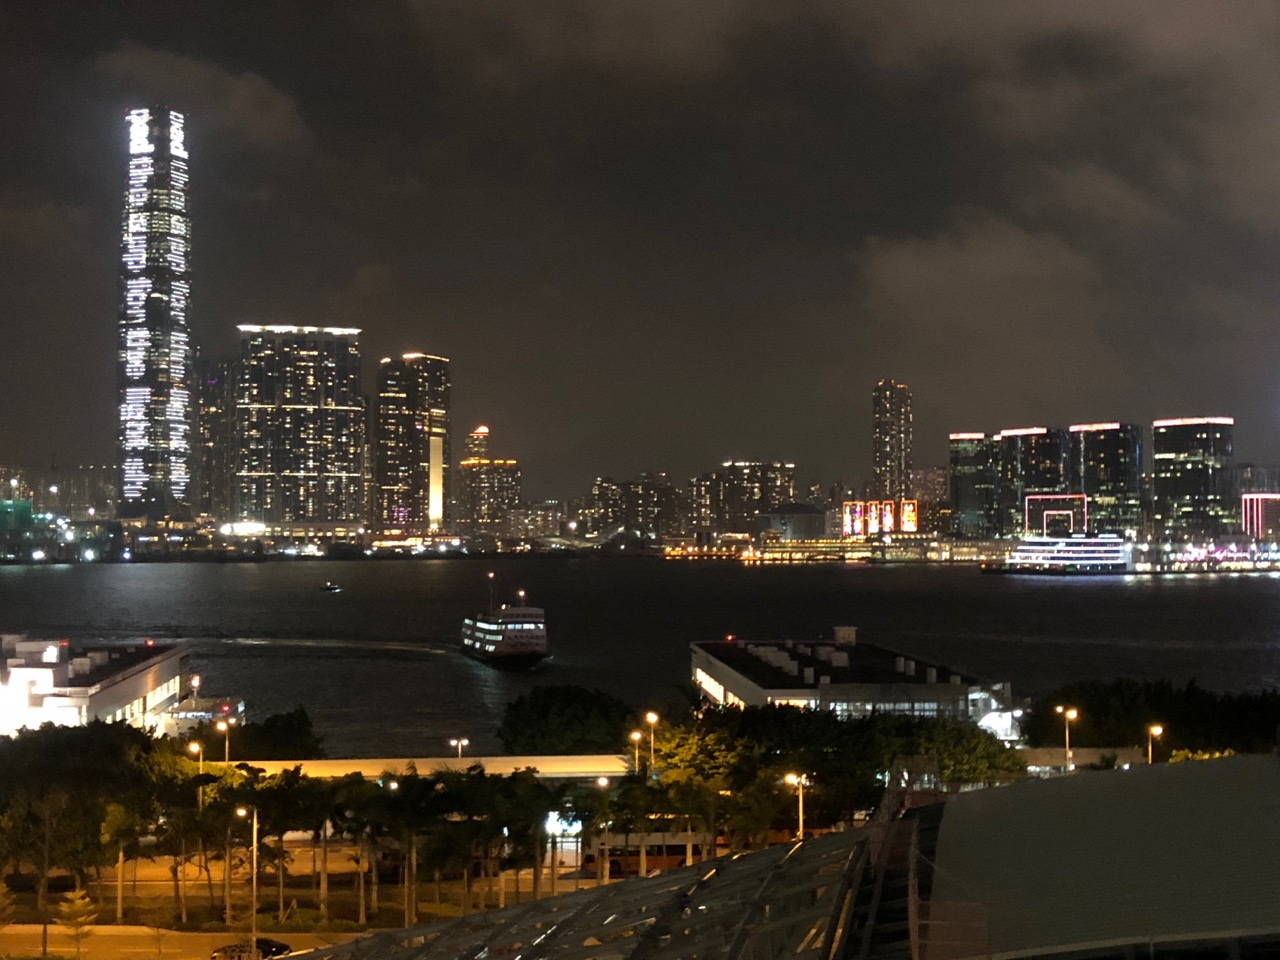 The view from atop the IFC Mall of Hong Kong's Bladerunneresque nightscape, looking out towards Kowloon side